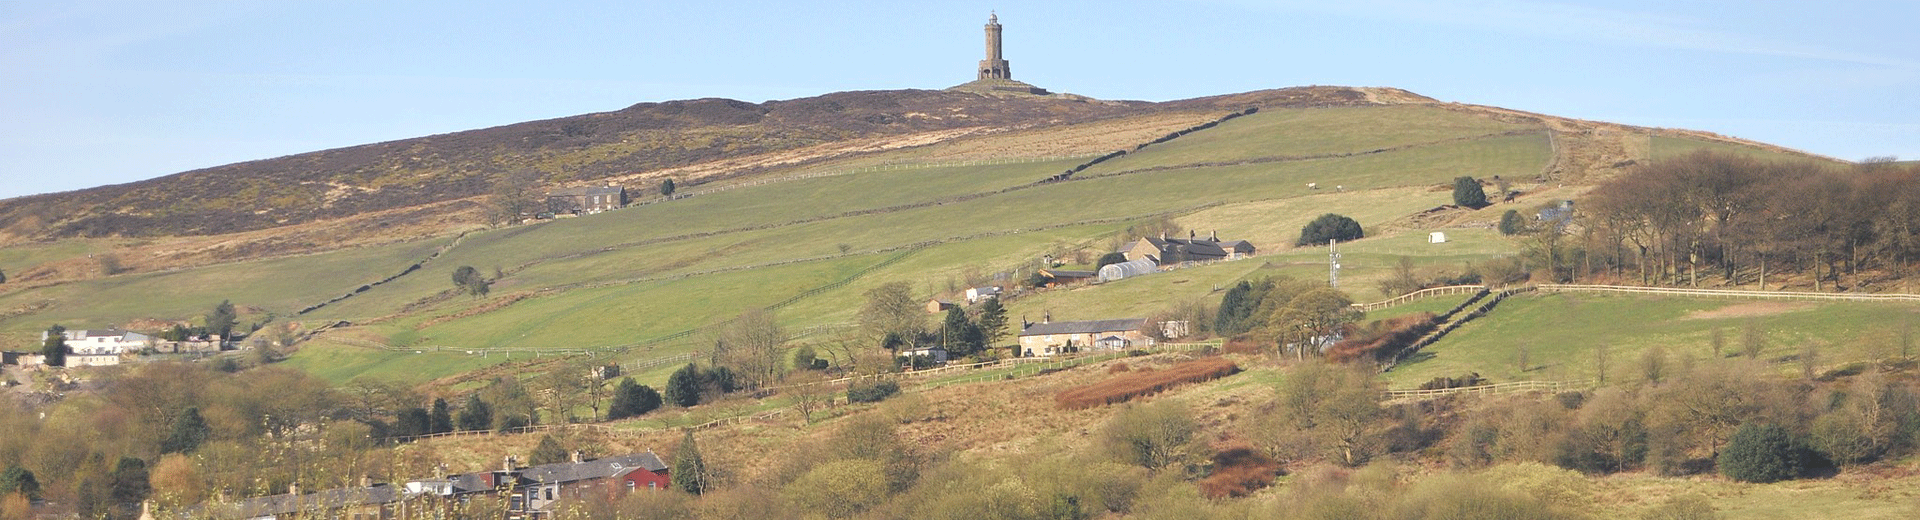 Darwen Tower and Darwen Moor (Clementslinda, CC BY-SA 3.0 <https://creativecommons.org/licenses/by-sa/3.0>, via Wikimedia Commons)